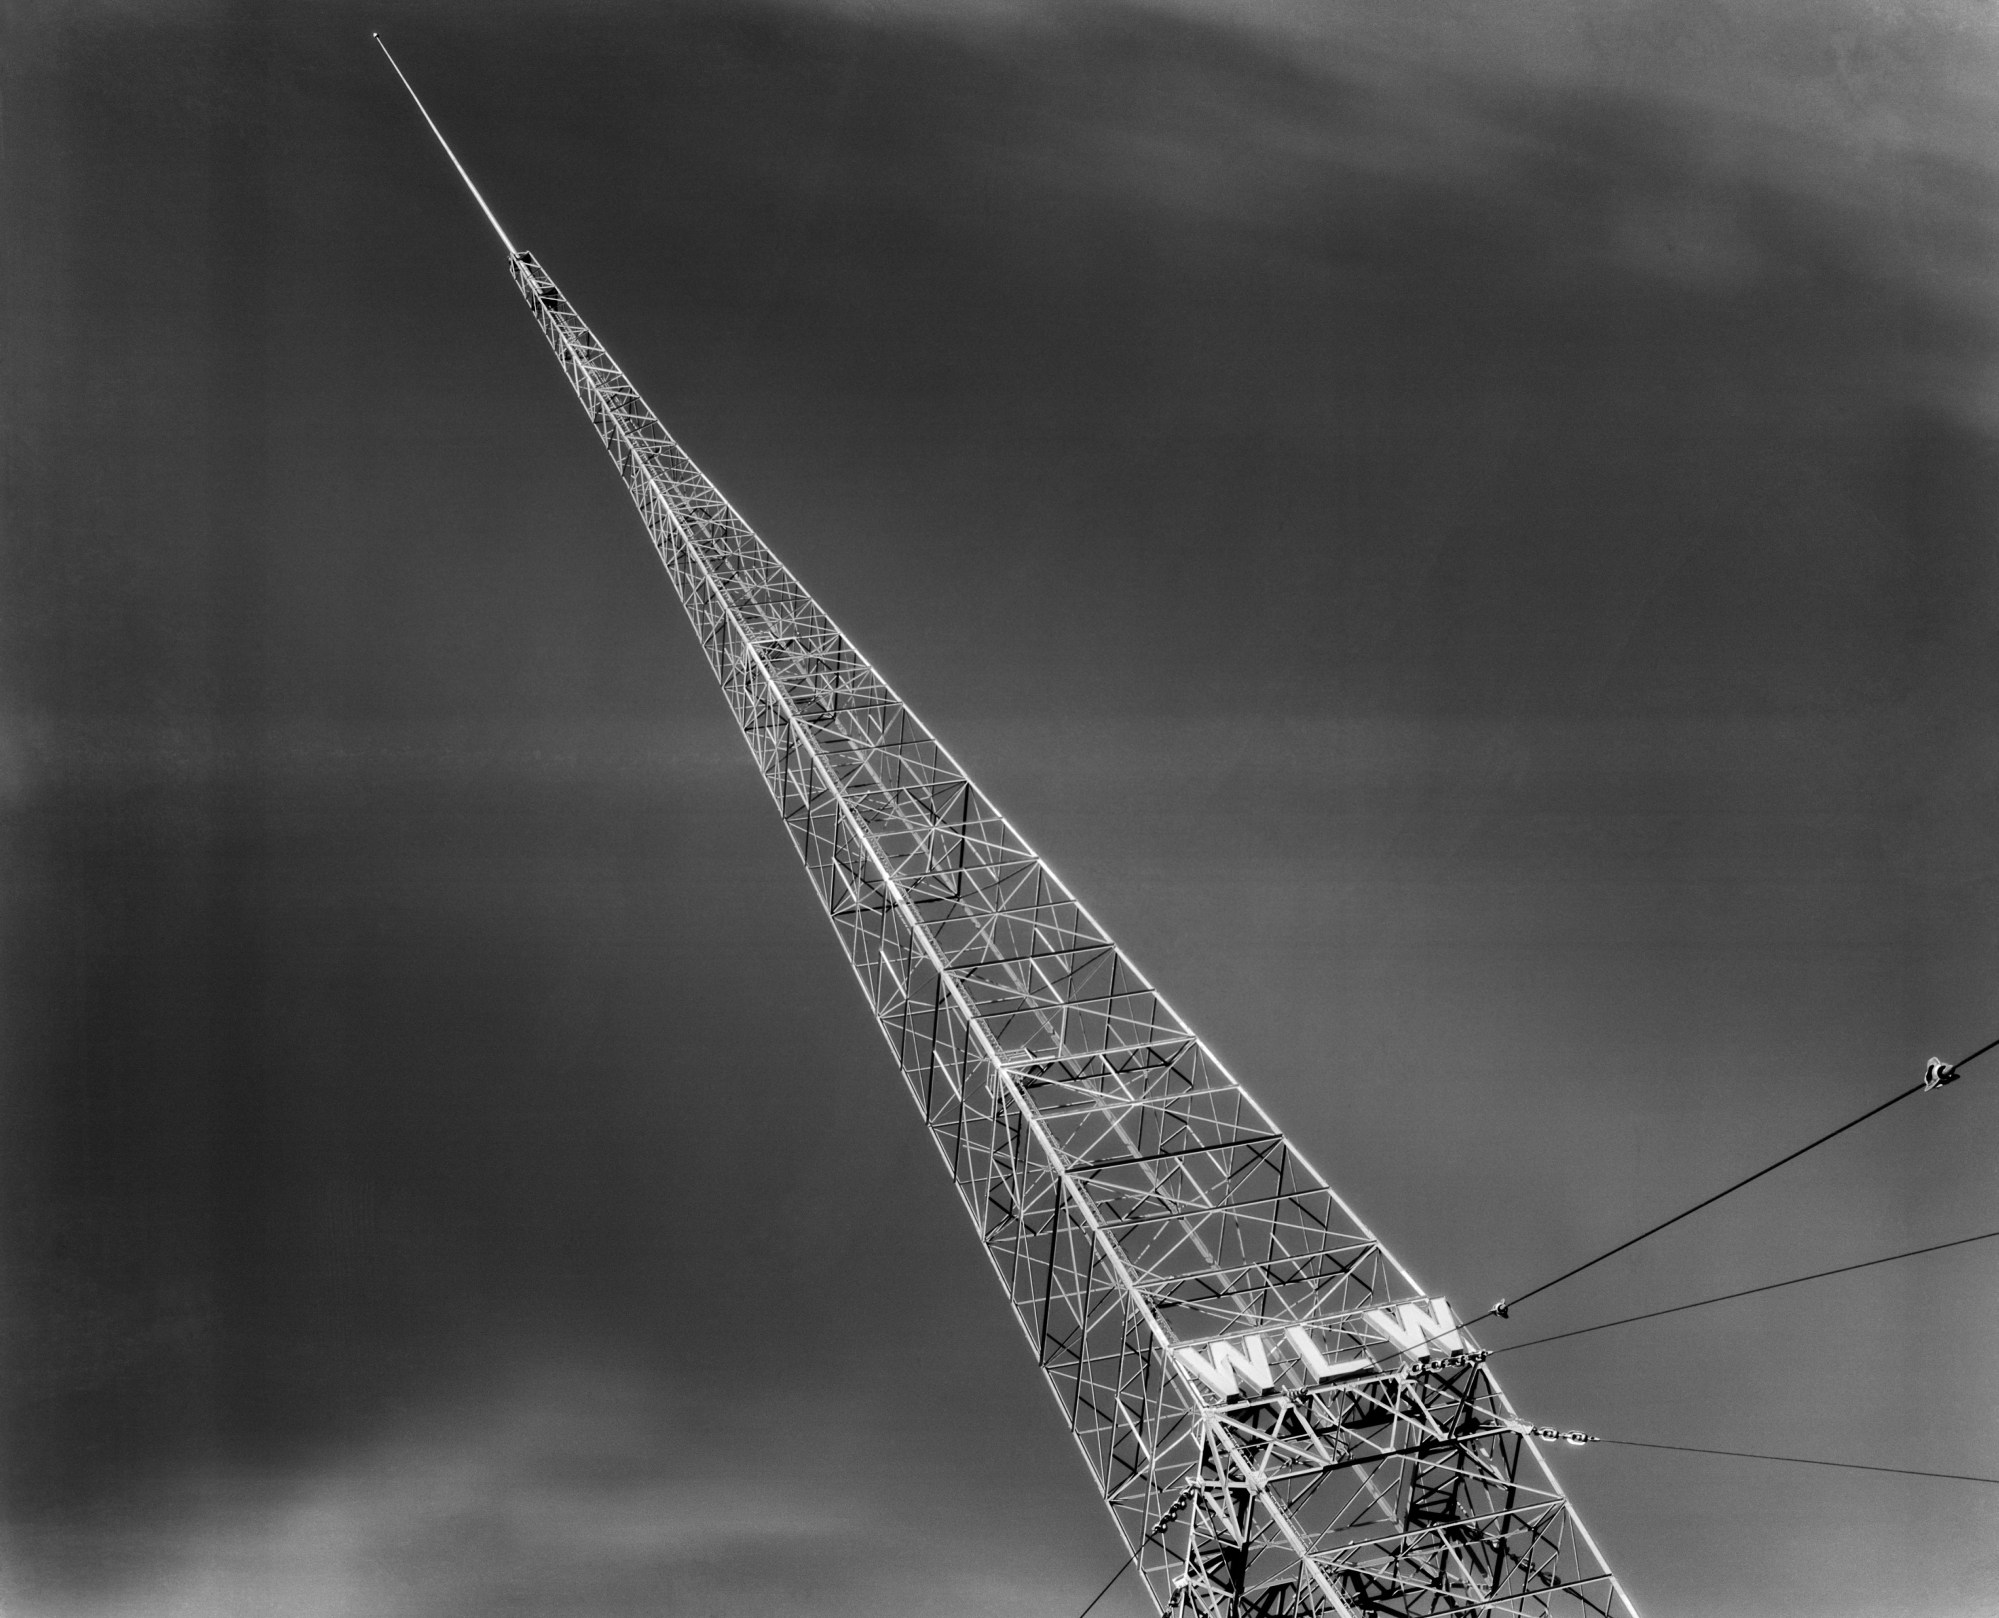 hight resolution of for a brief time in the 1930s radio station wlw in ohio became america s o national endowment for the humanities neh